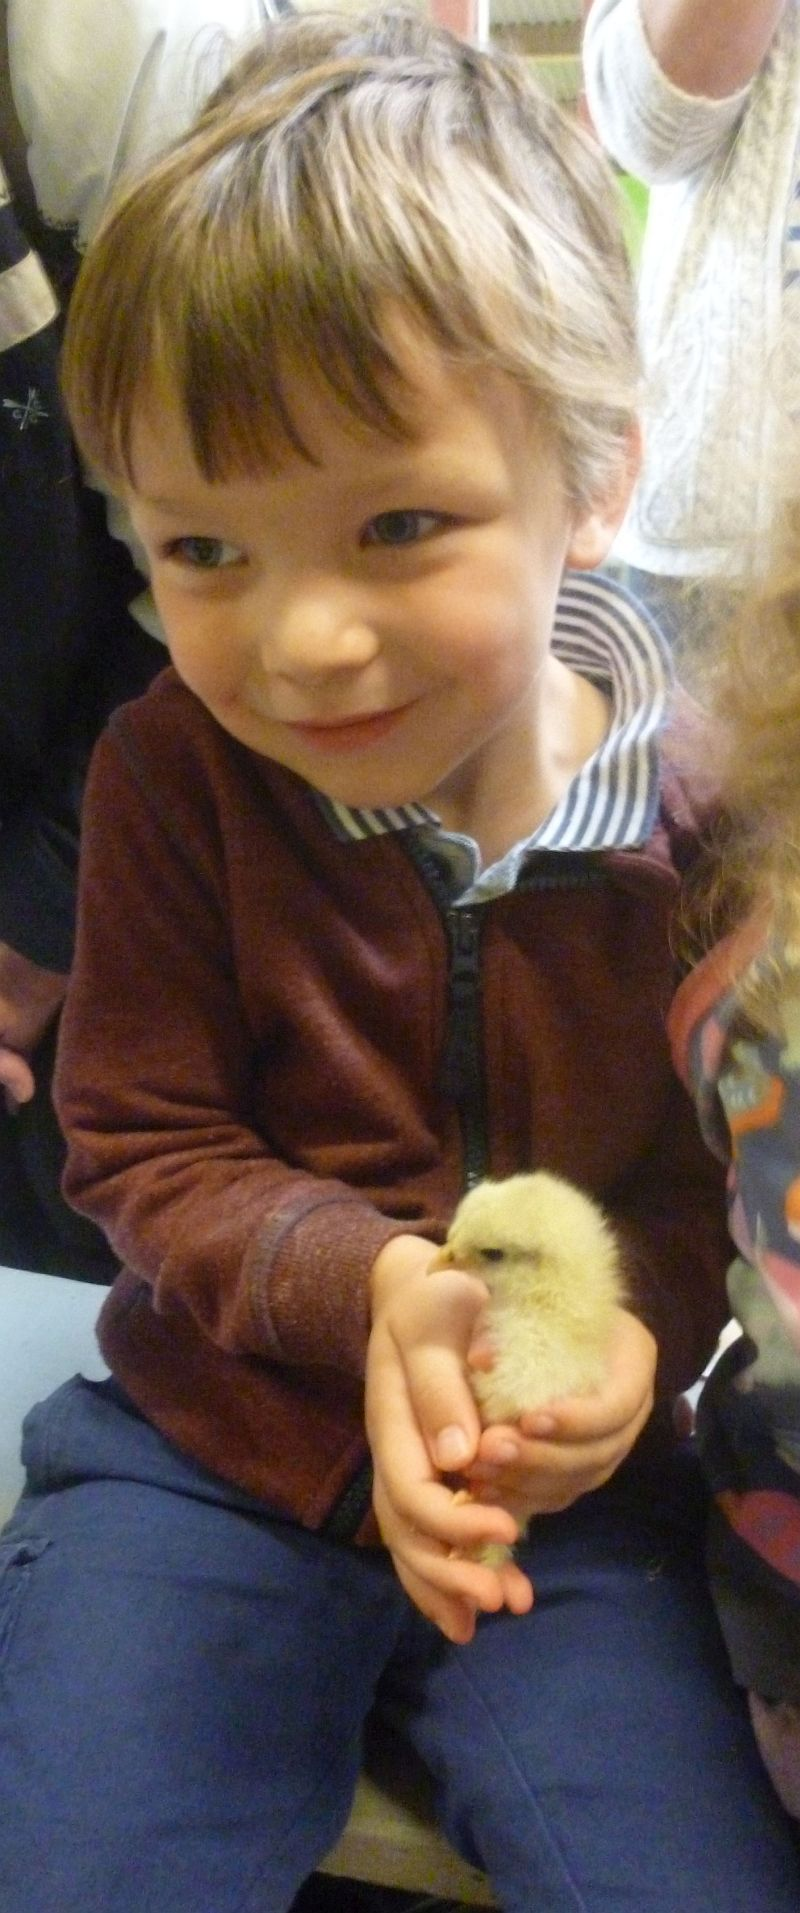 Noah cuddling a young chick...